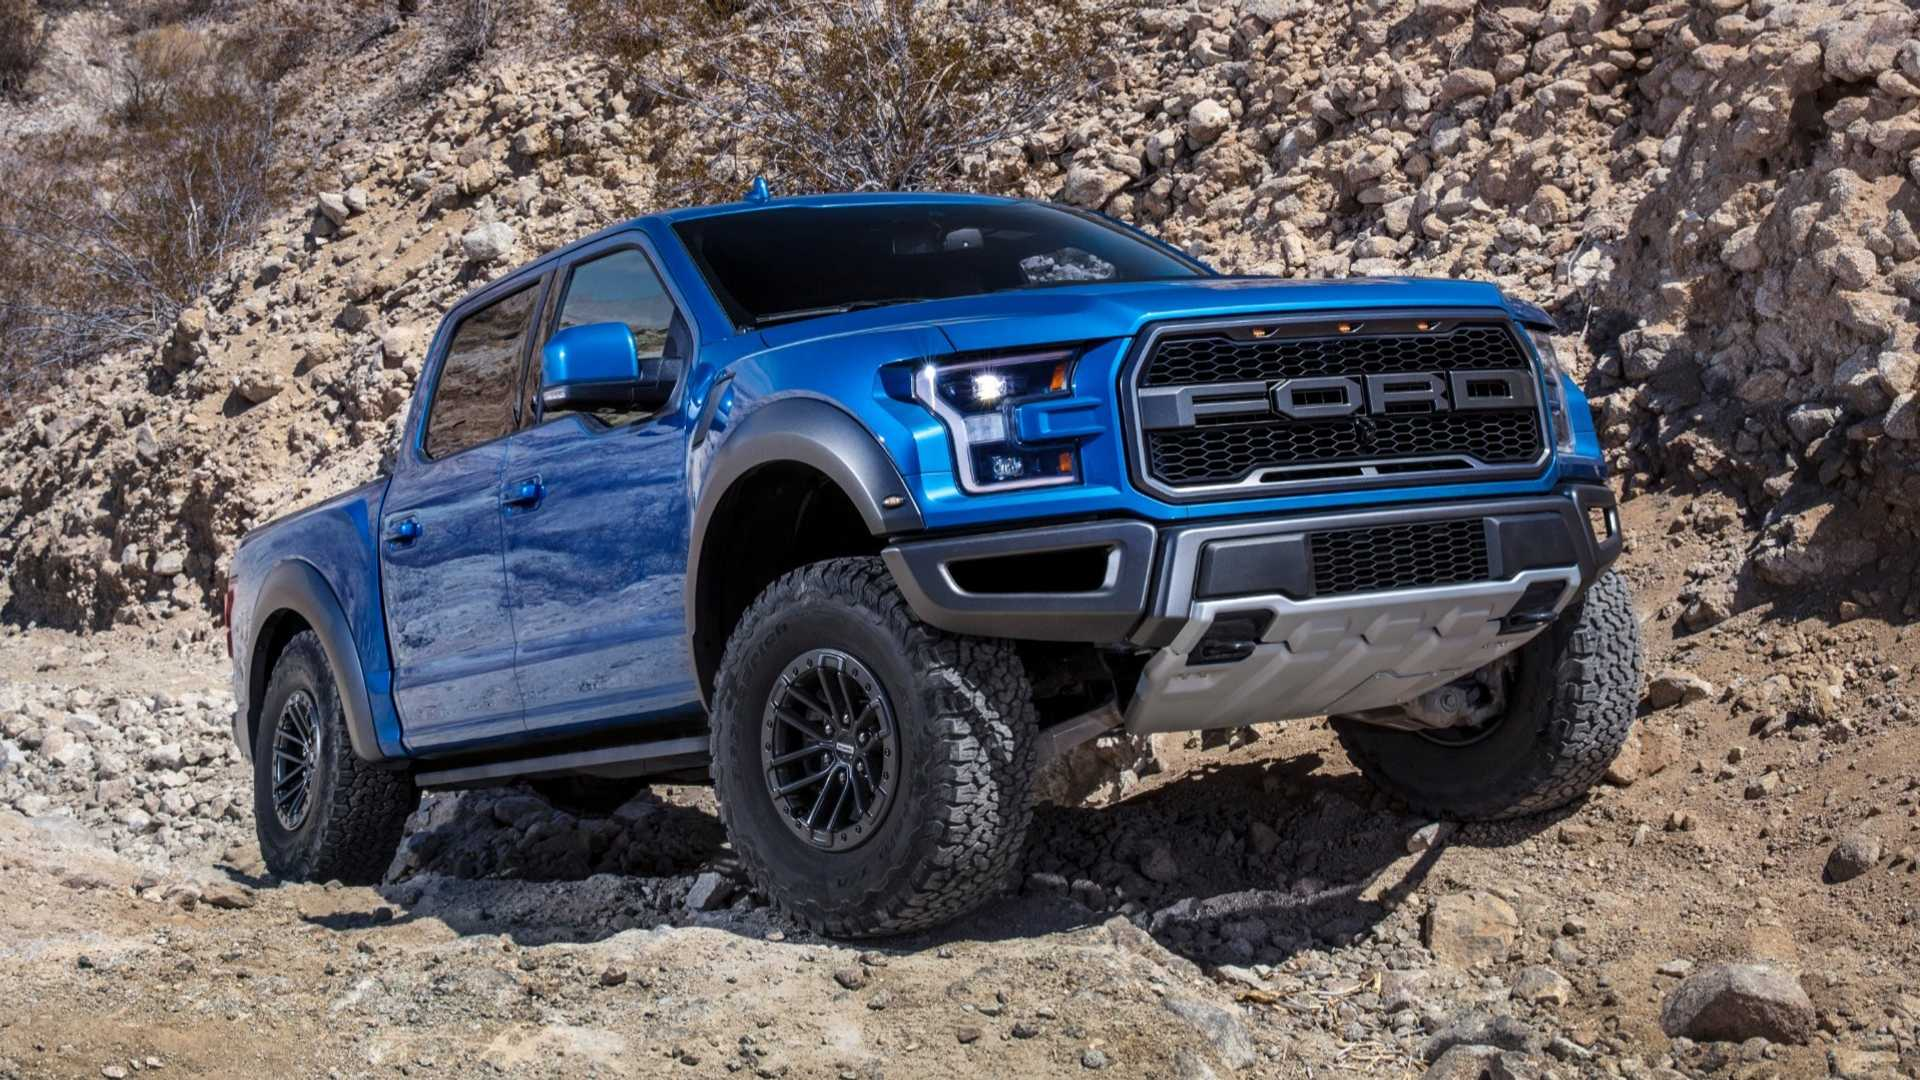 48 Gallery of 2019 Ford Velociraptor Research New with 2019 Ford Velociraptor